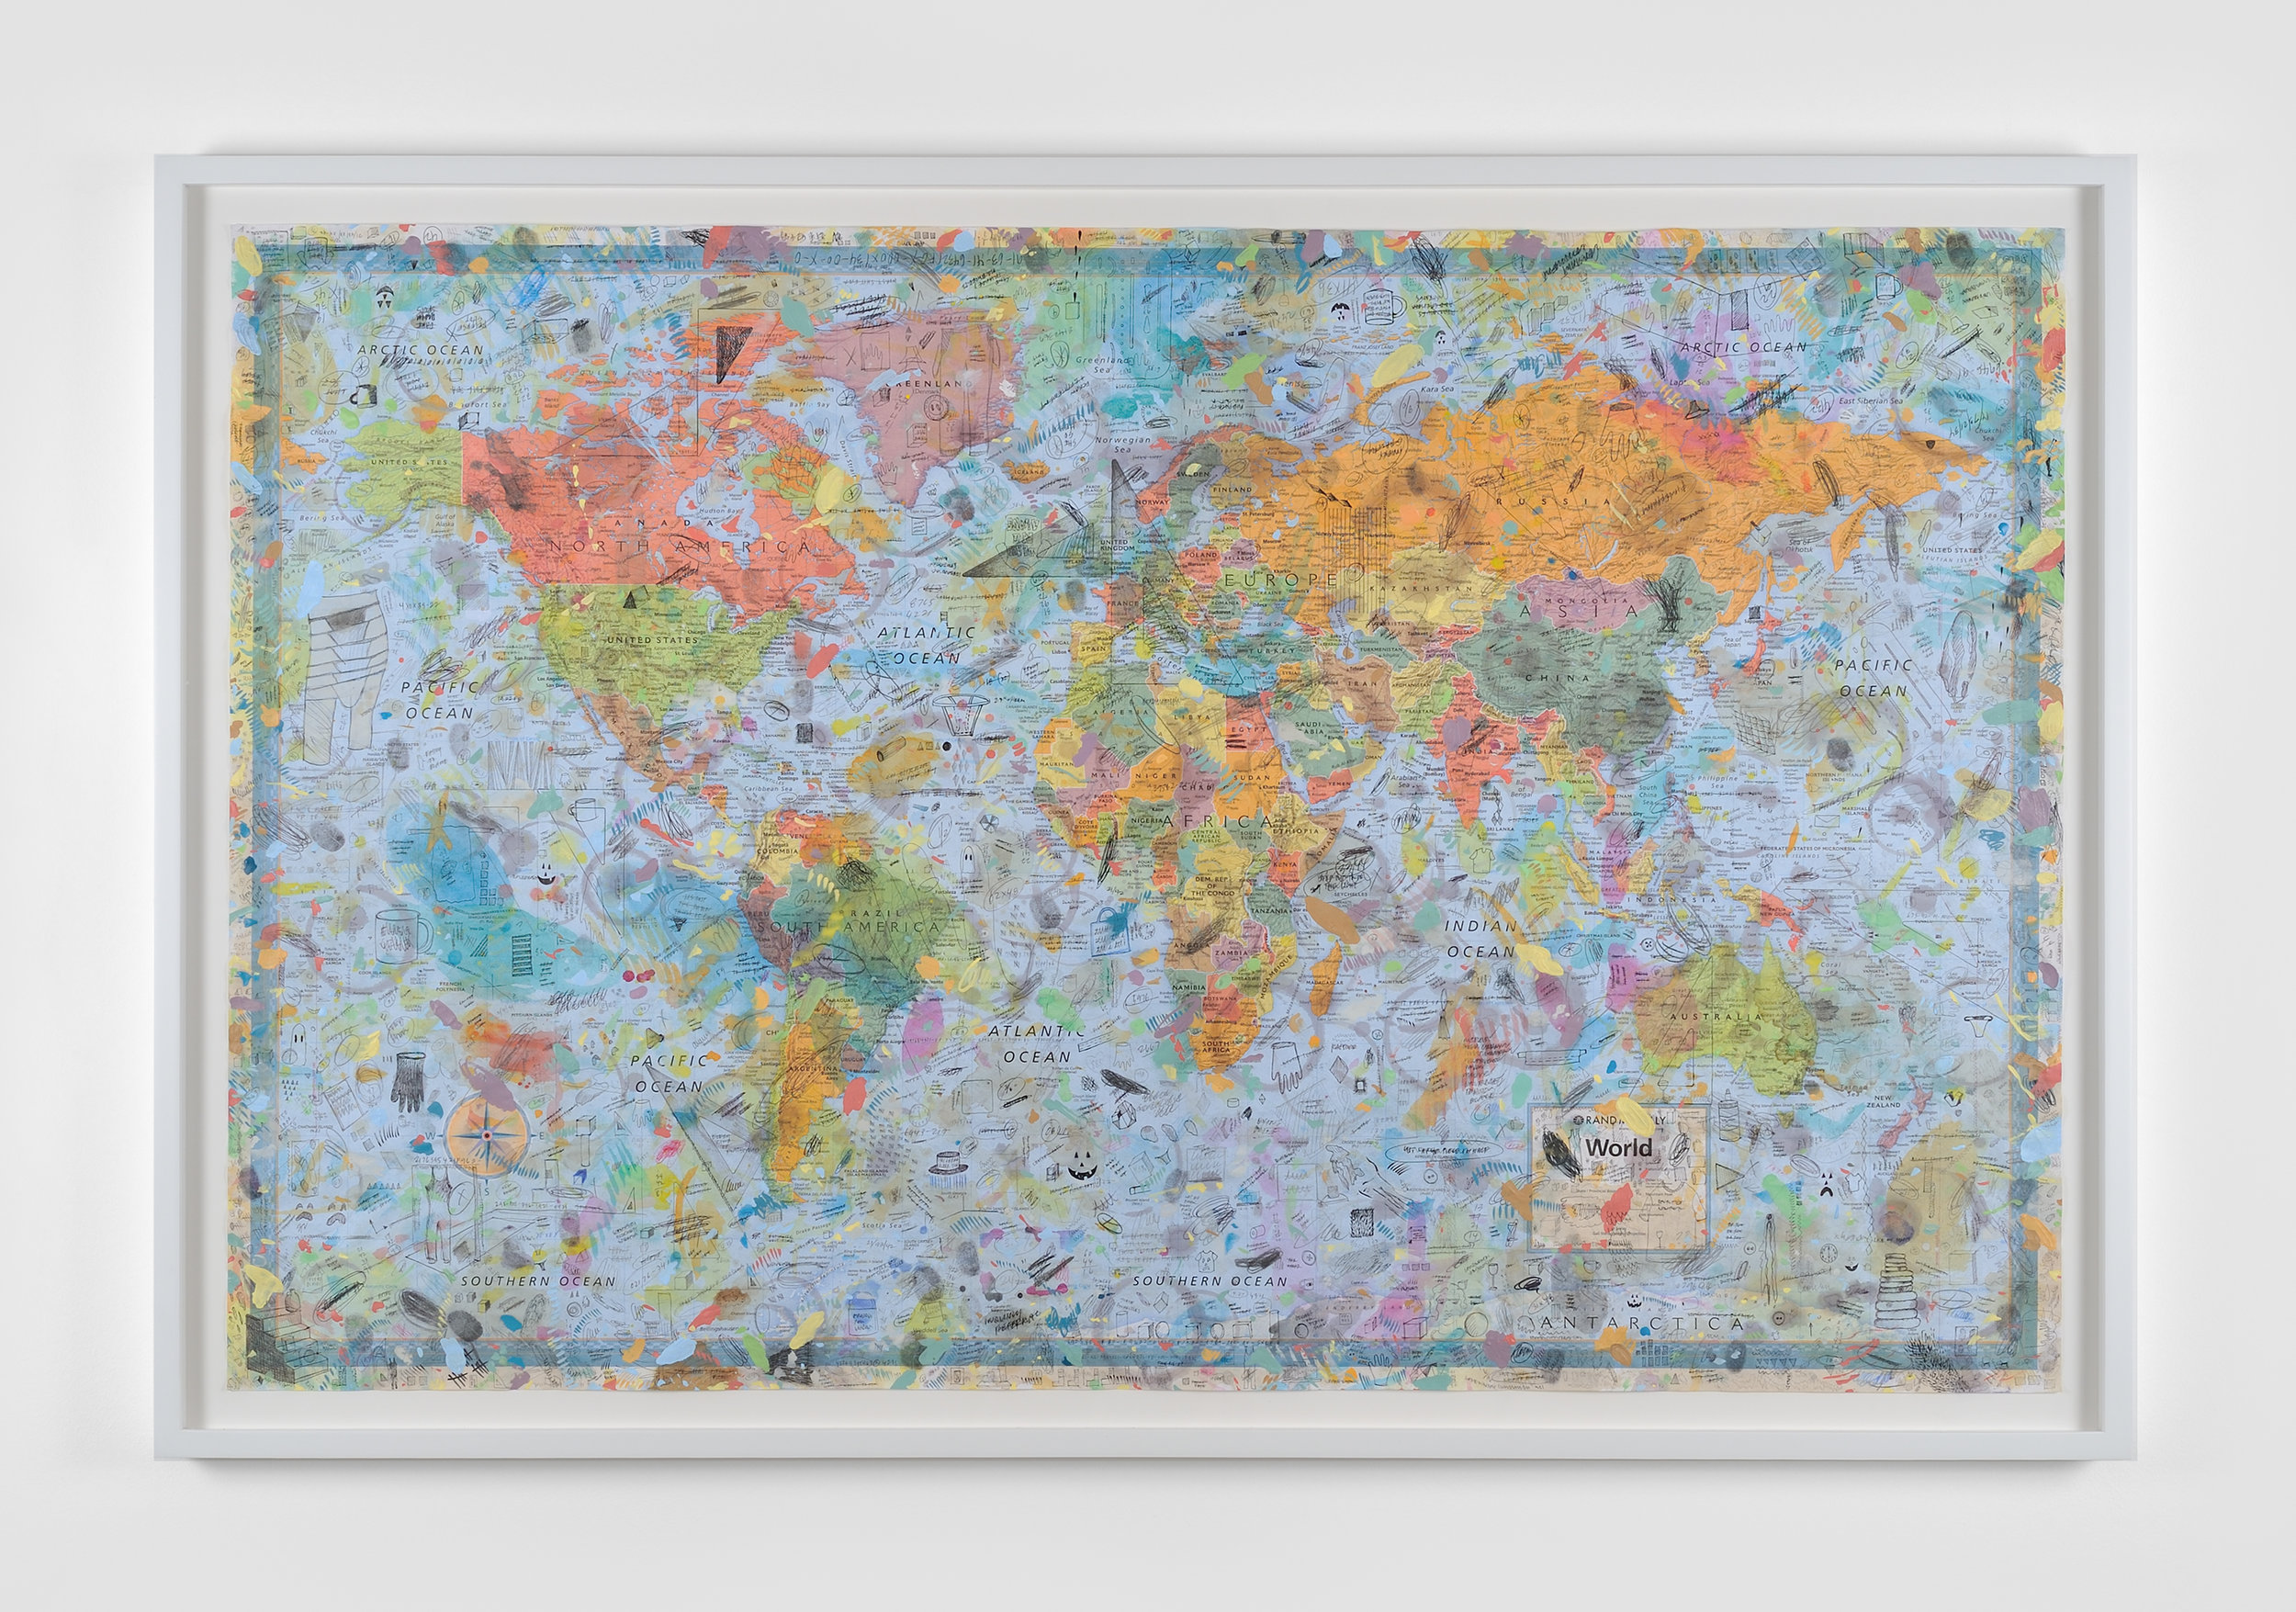 World Map, 2015 acrylic paint, watercolor, ball point pen, red wine, tea, marker, graphite, coffee on world map 89 x 134,5 cm - 35 x 53 inches (framed)